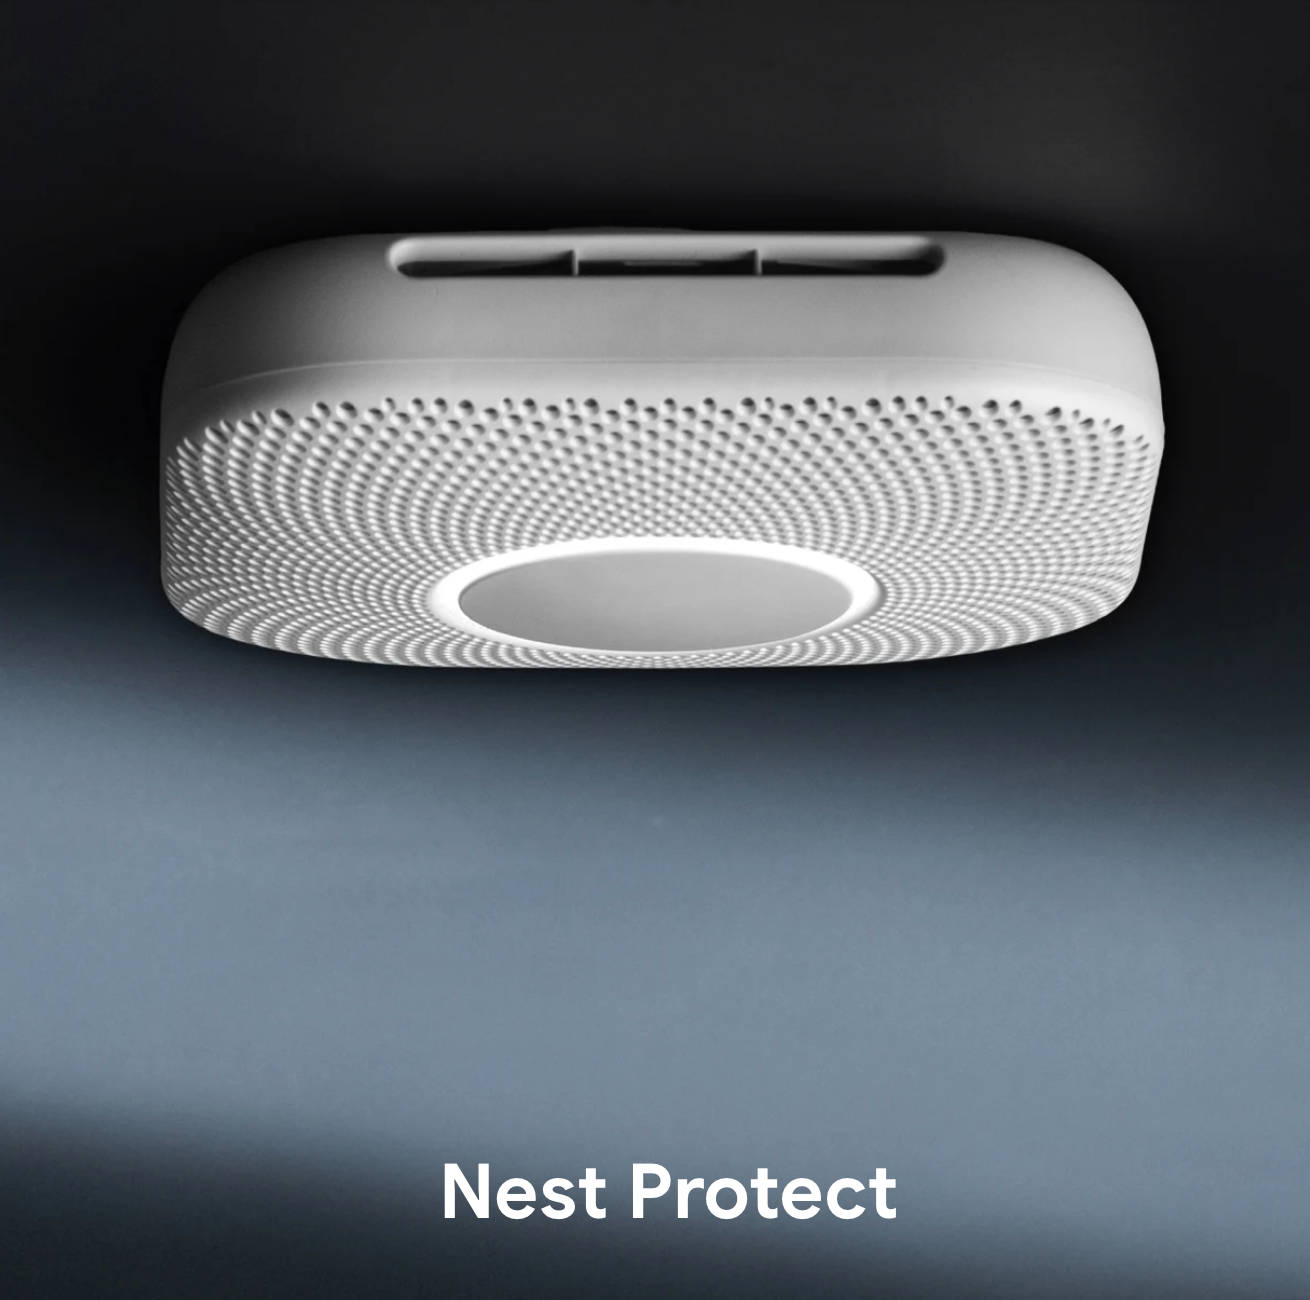 Google Nest Protect Battery Smoke/Carbon Monoxide Alarm 2nd